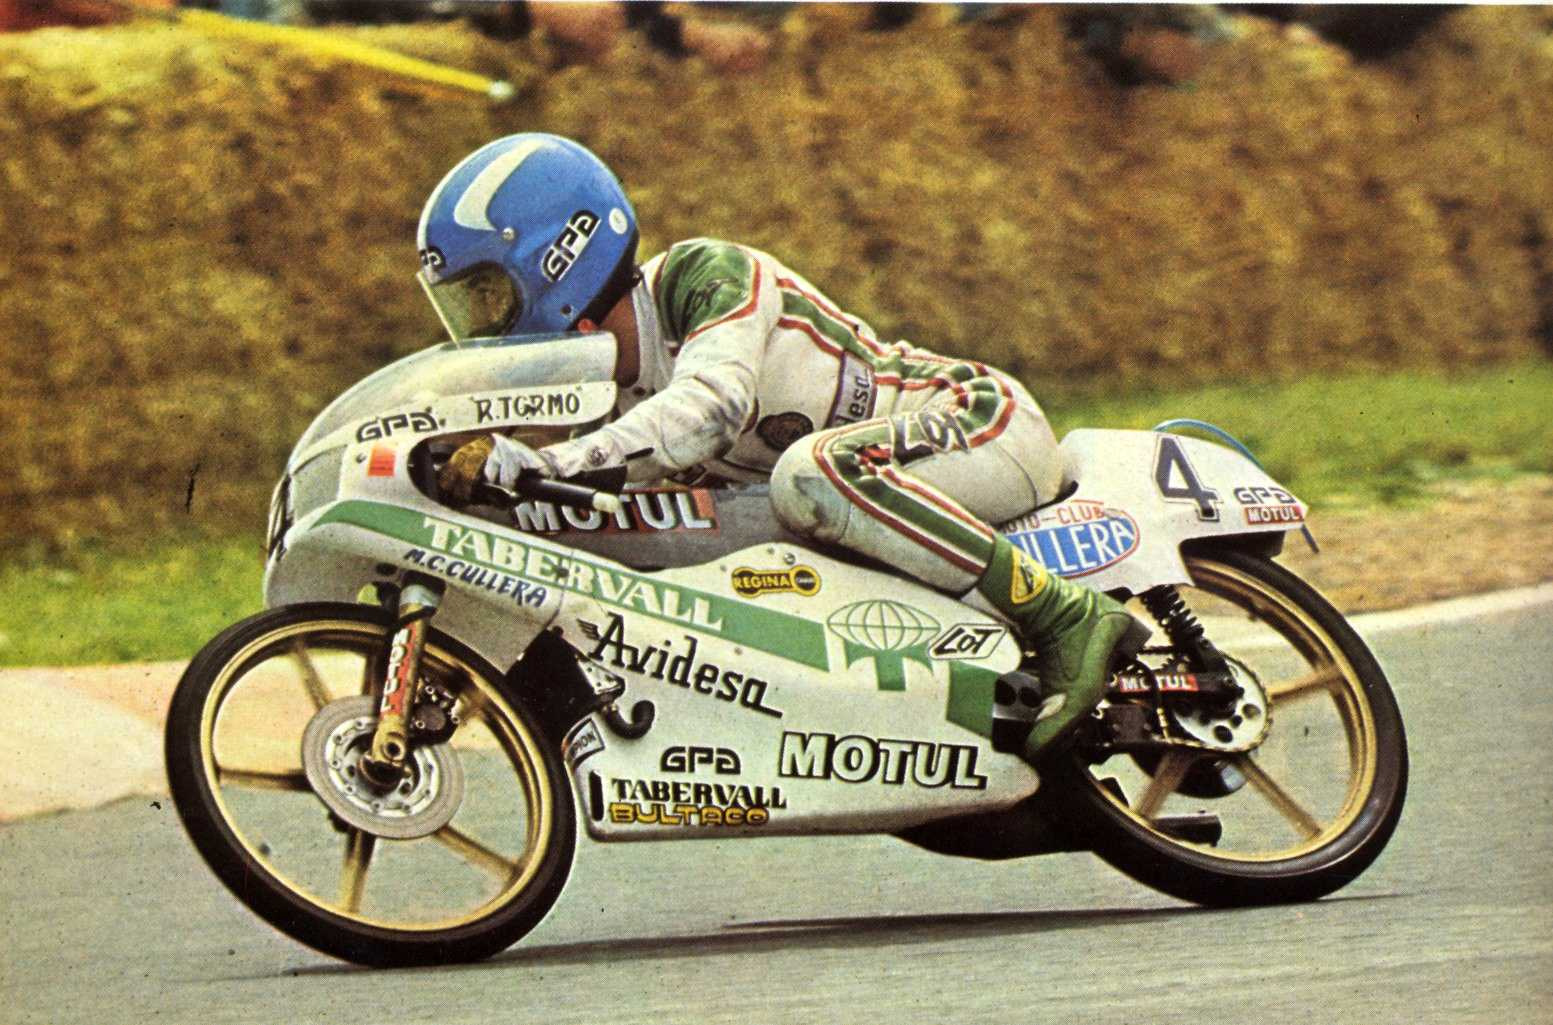 http://www.moto1pro.com/sites/default/files/ricardo-tormo-1981.jpg